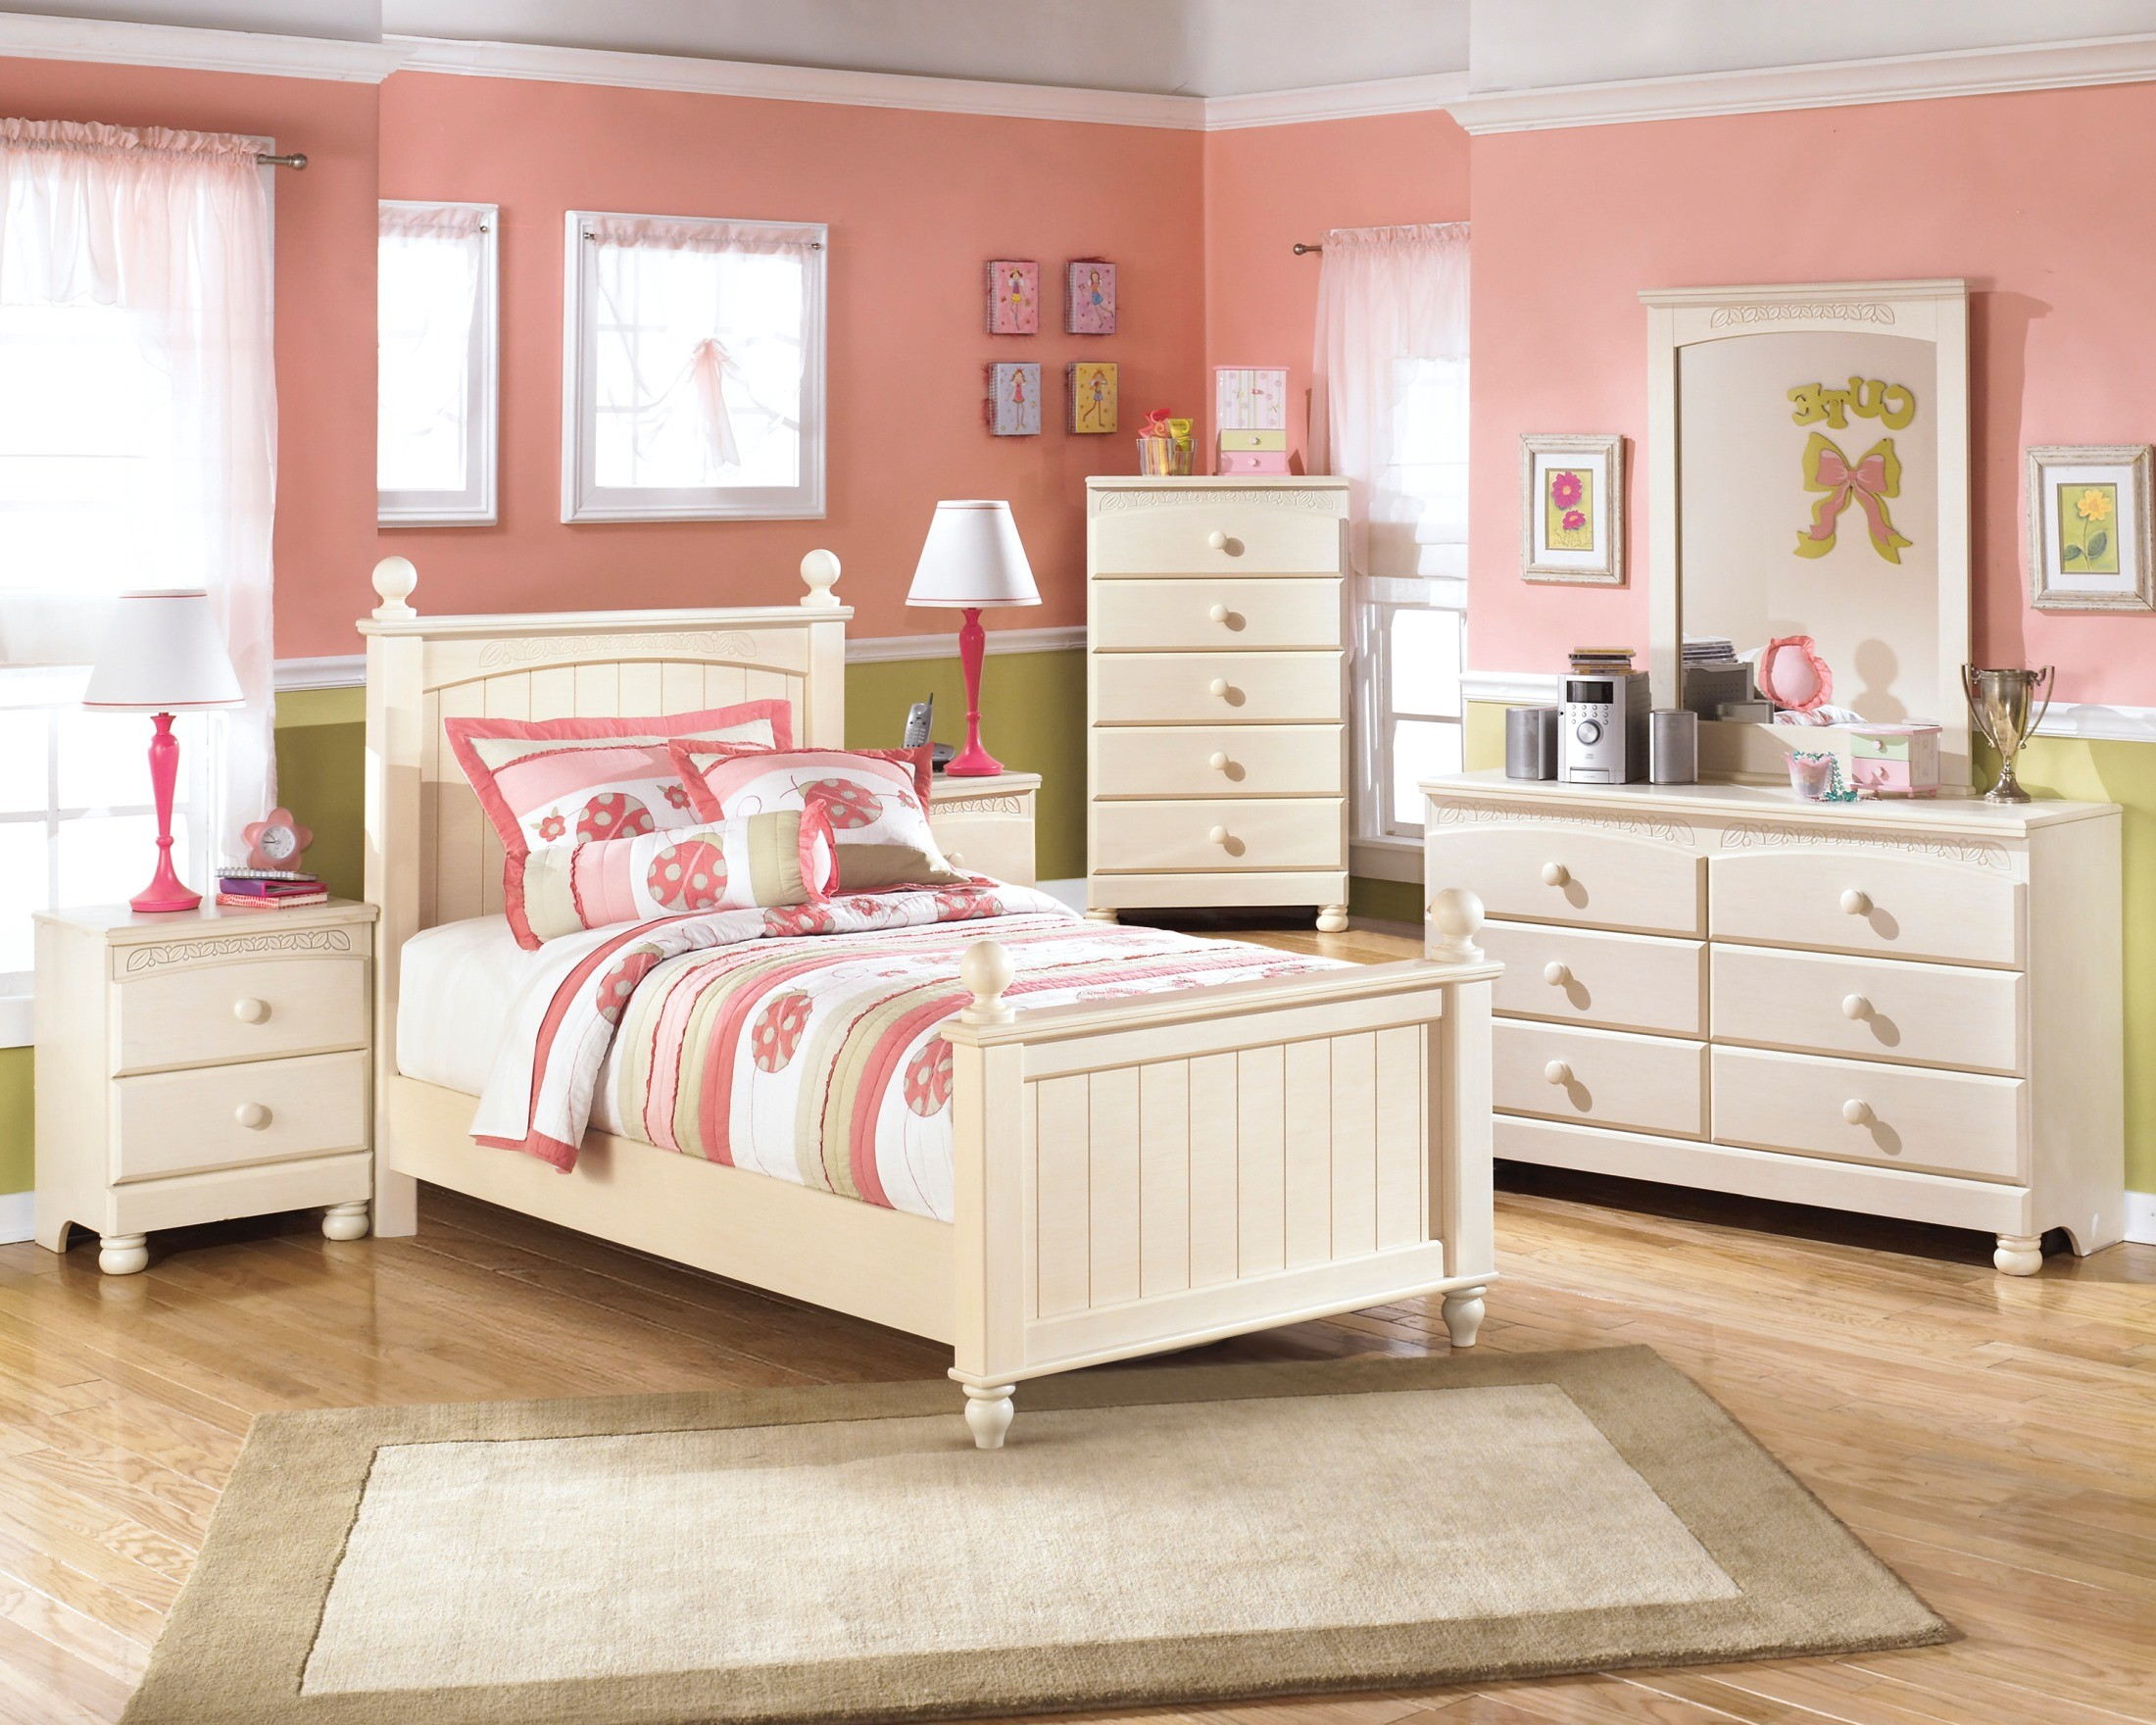 Furniture cottage retreat poster youth bedroom set b213 kids bedroom furniture Cottage retreat collection bedroom furniture